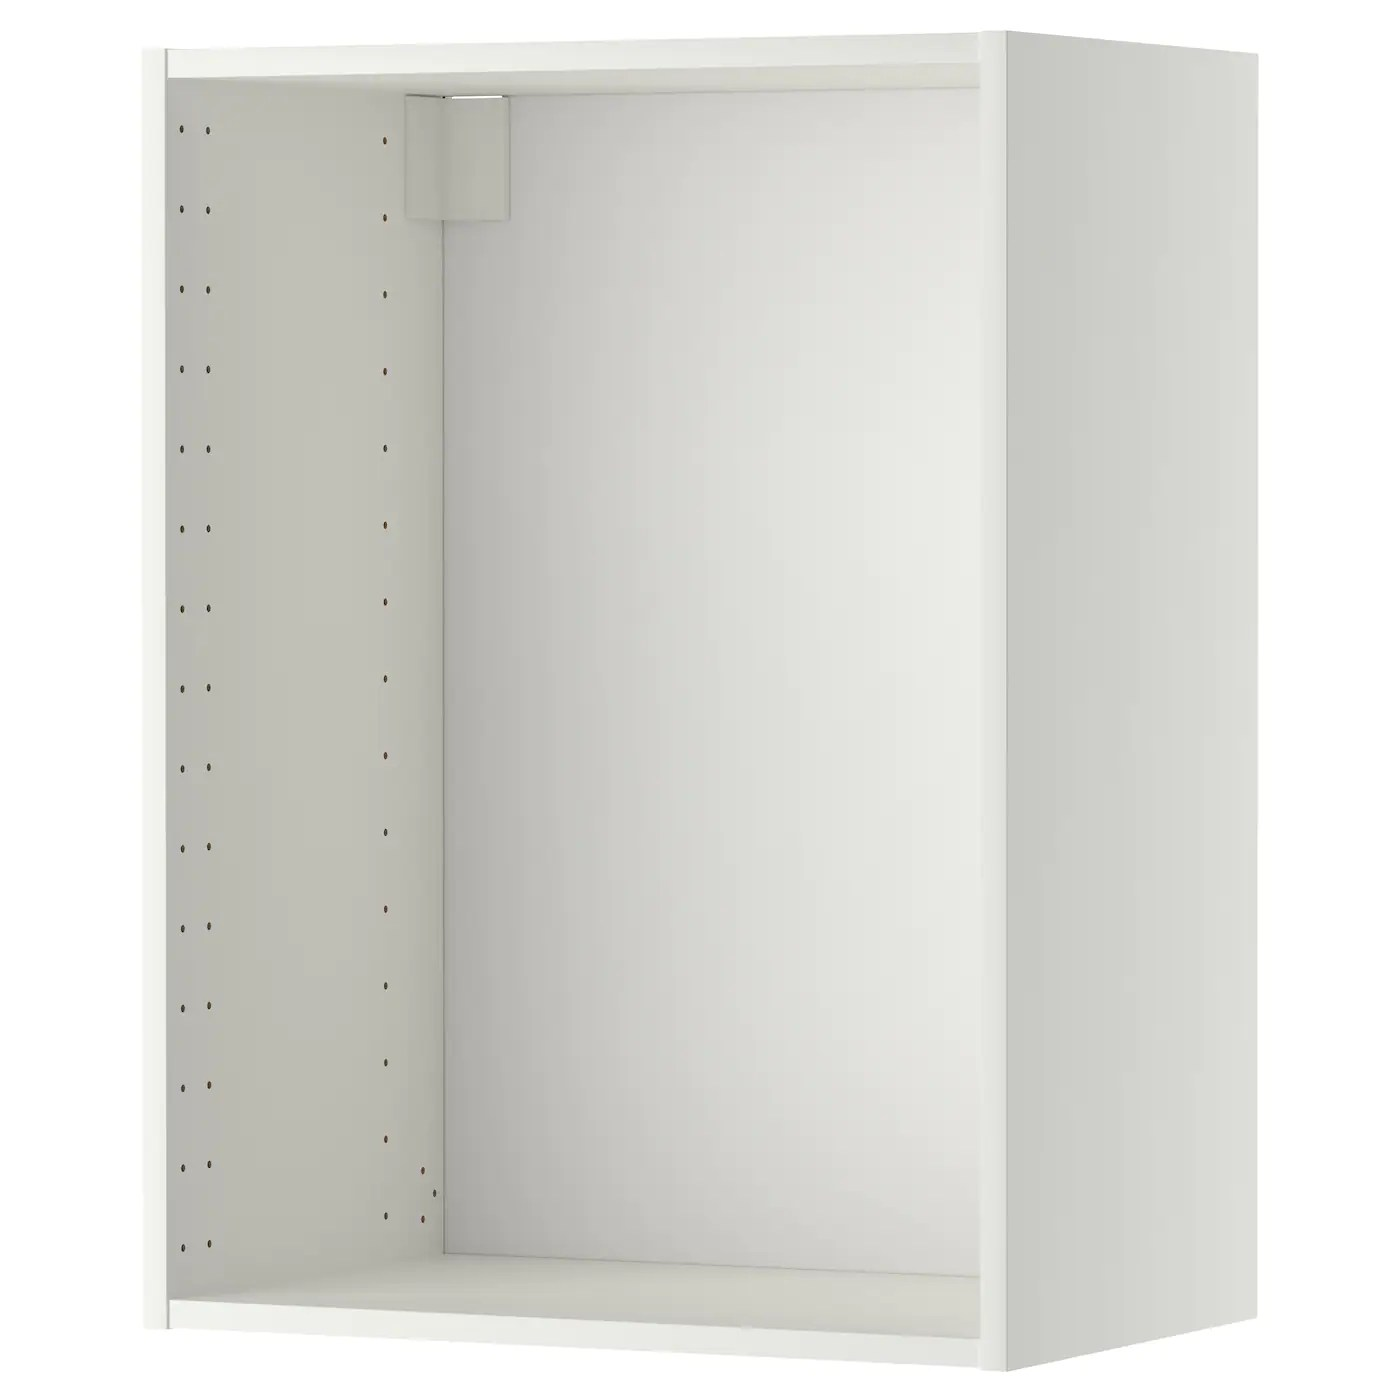 Ikea Method Metod Wall Cabinet Frame White